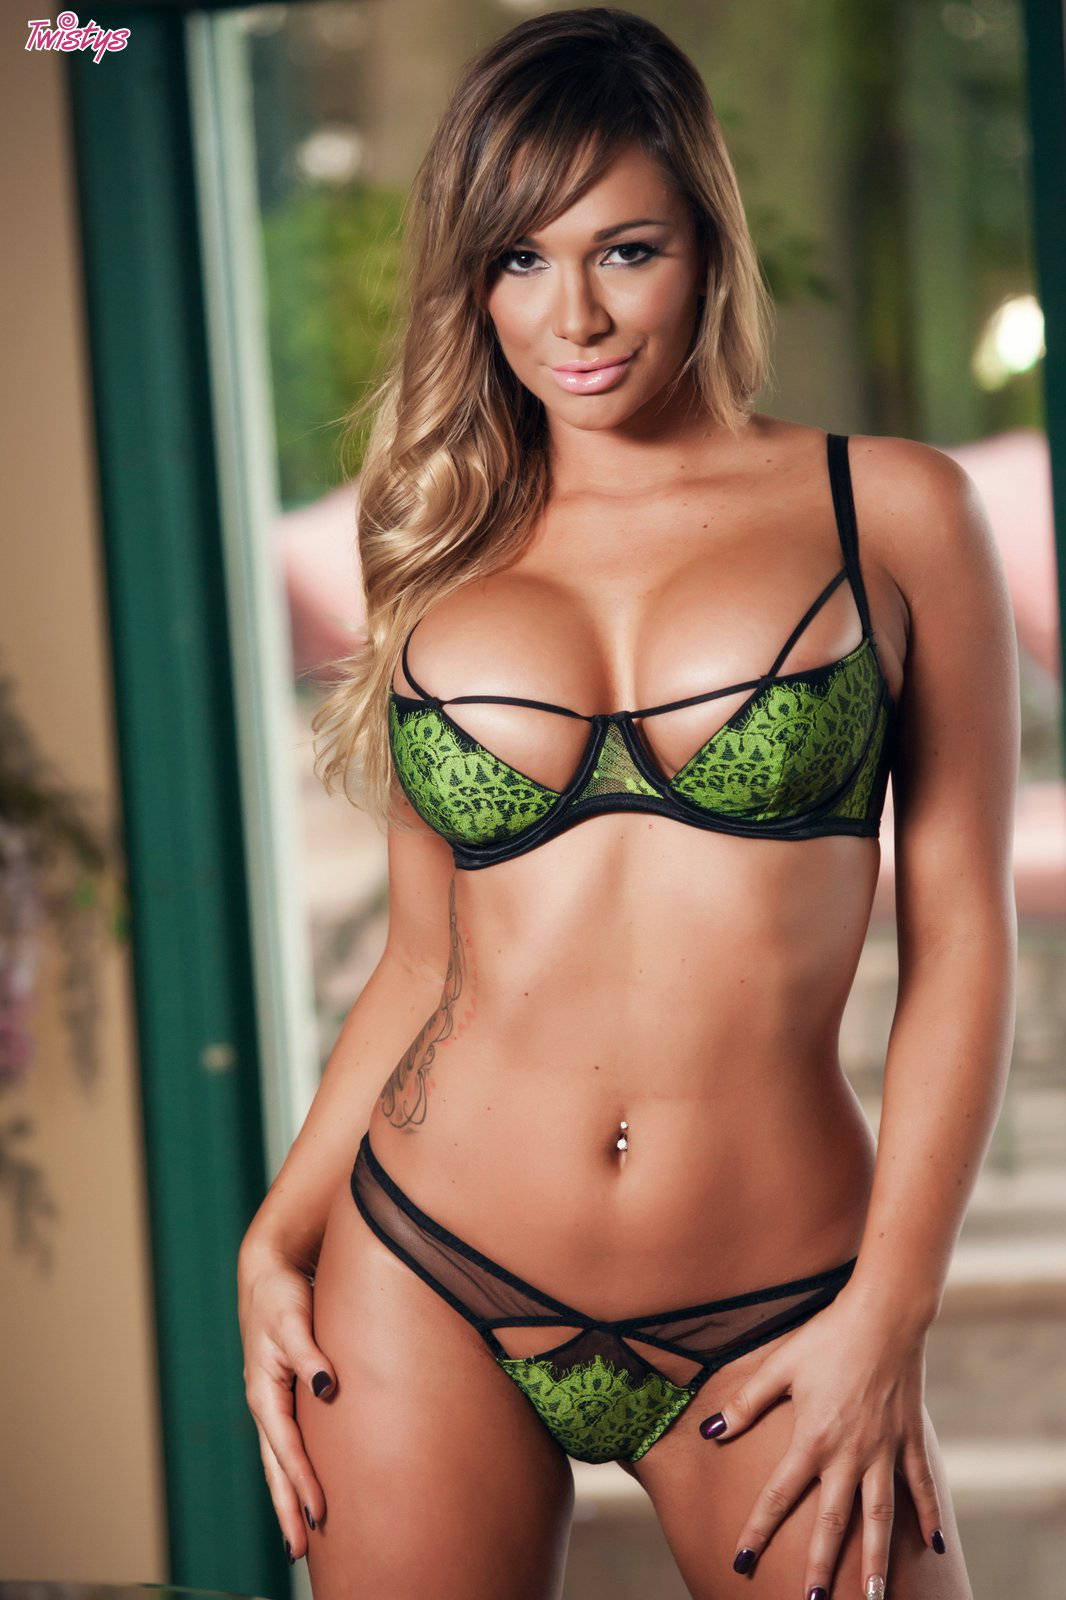 Brazzers green bikini cable situation